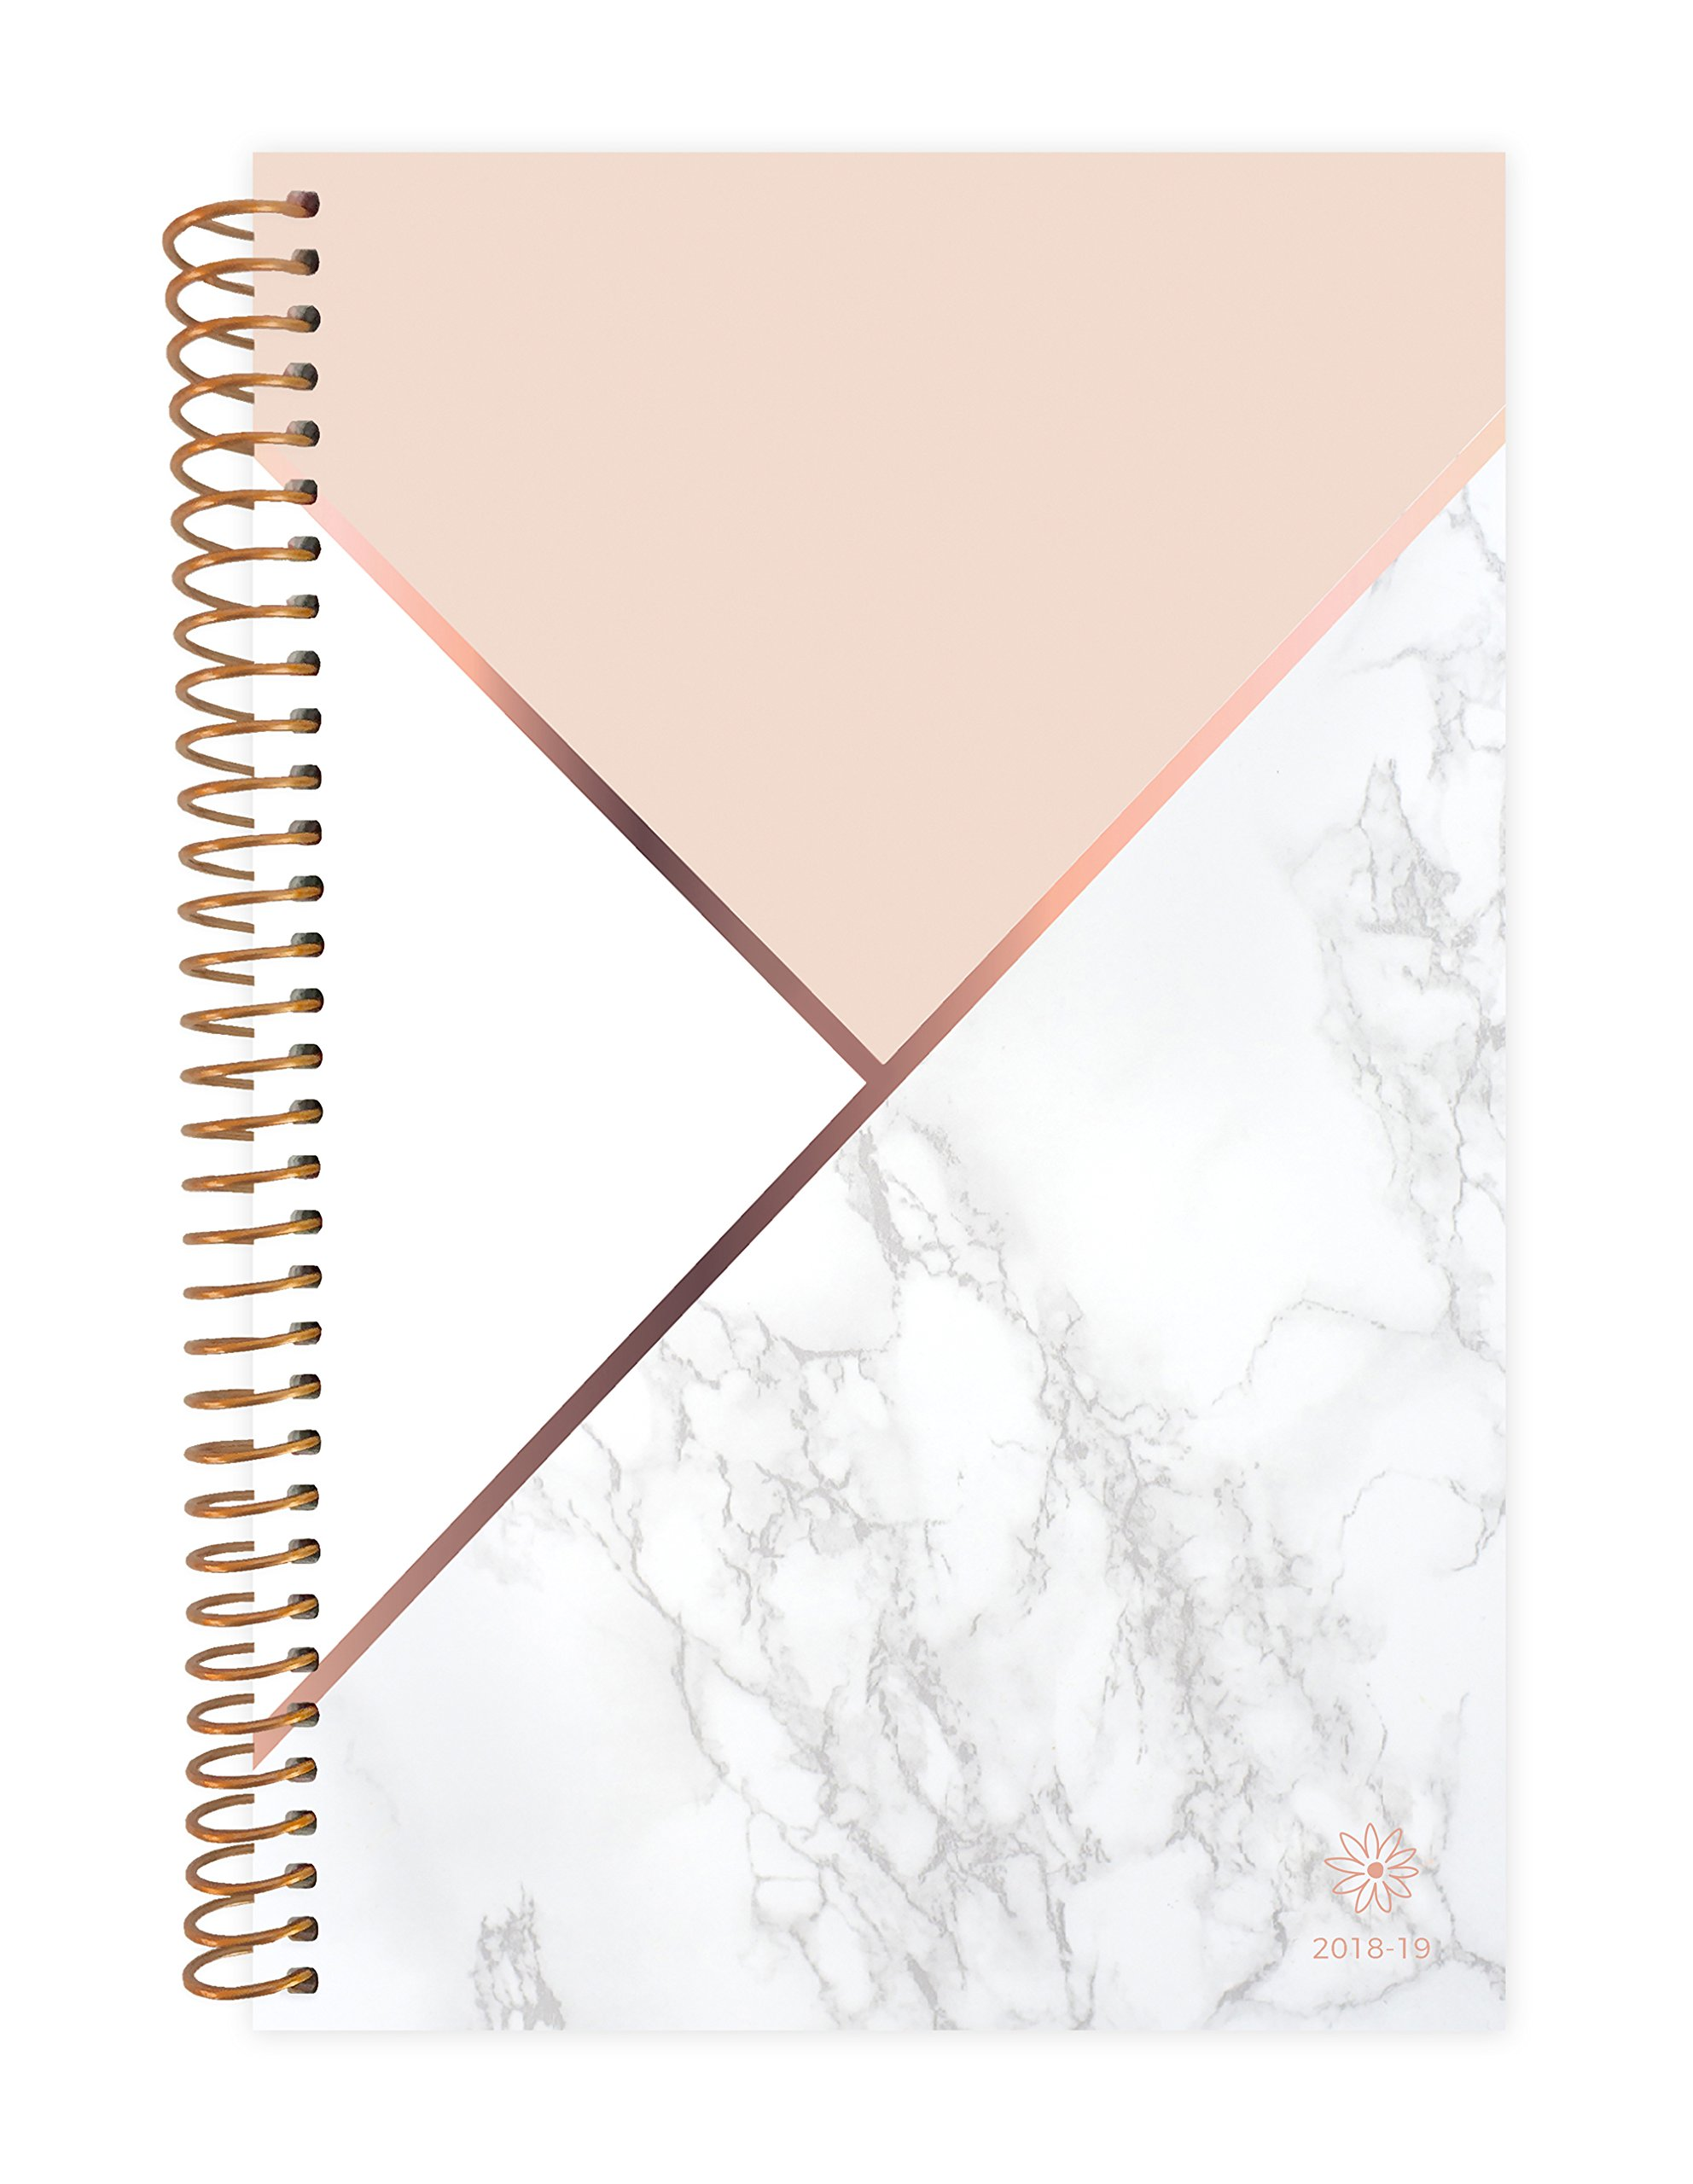 Bloom Daily Planners 2018-2019 Academic Year Day Planner - Monthly and Weekly Calendar Book - Inspirational Dated Agenda Organizer (August 2018 - July 2019)- 6'' x 8.25'' - Color Blocking Marble